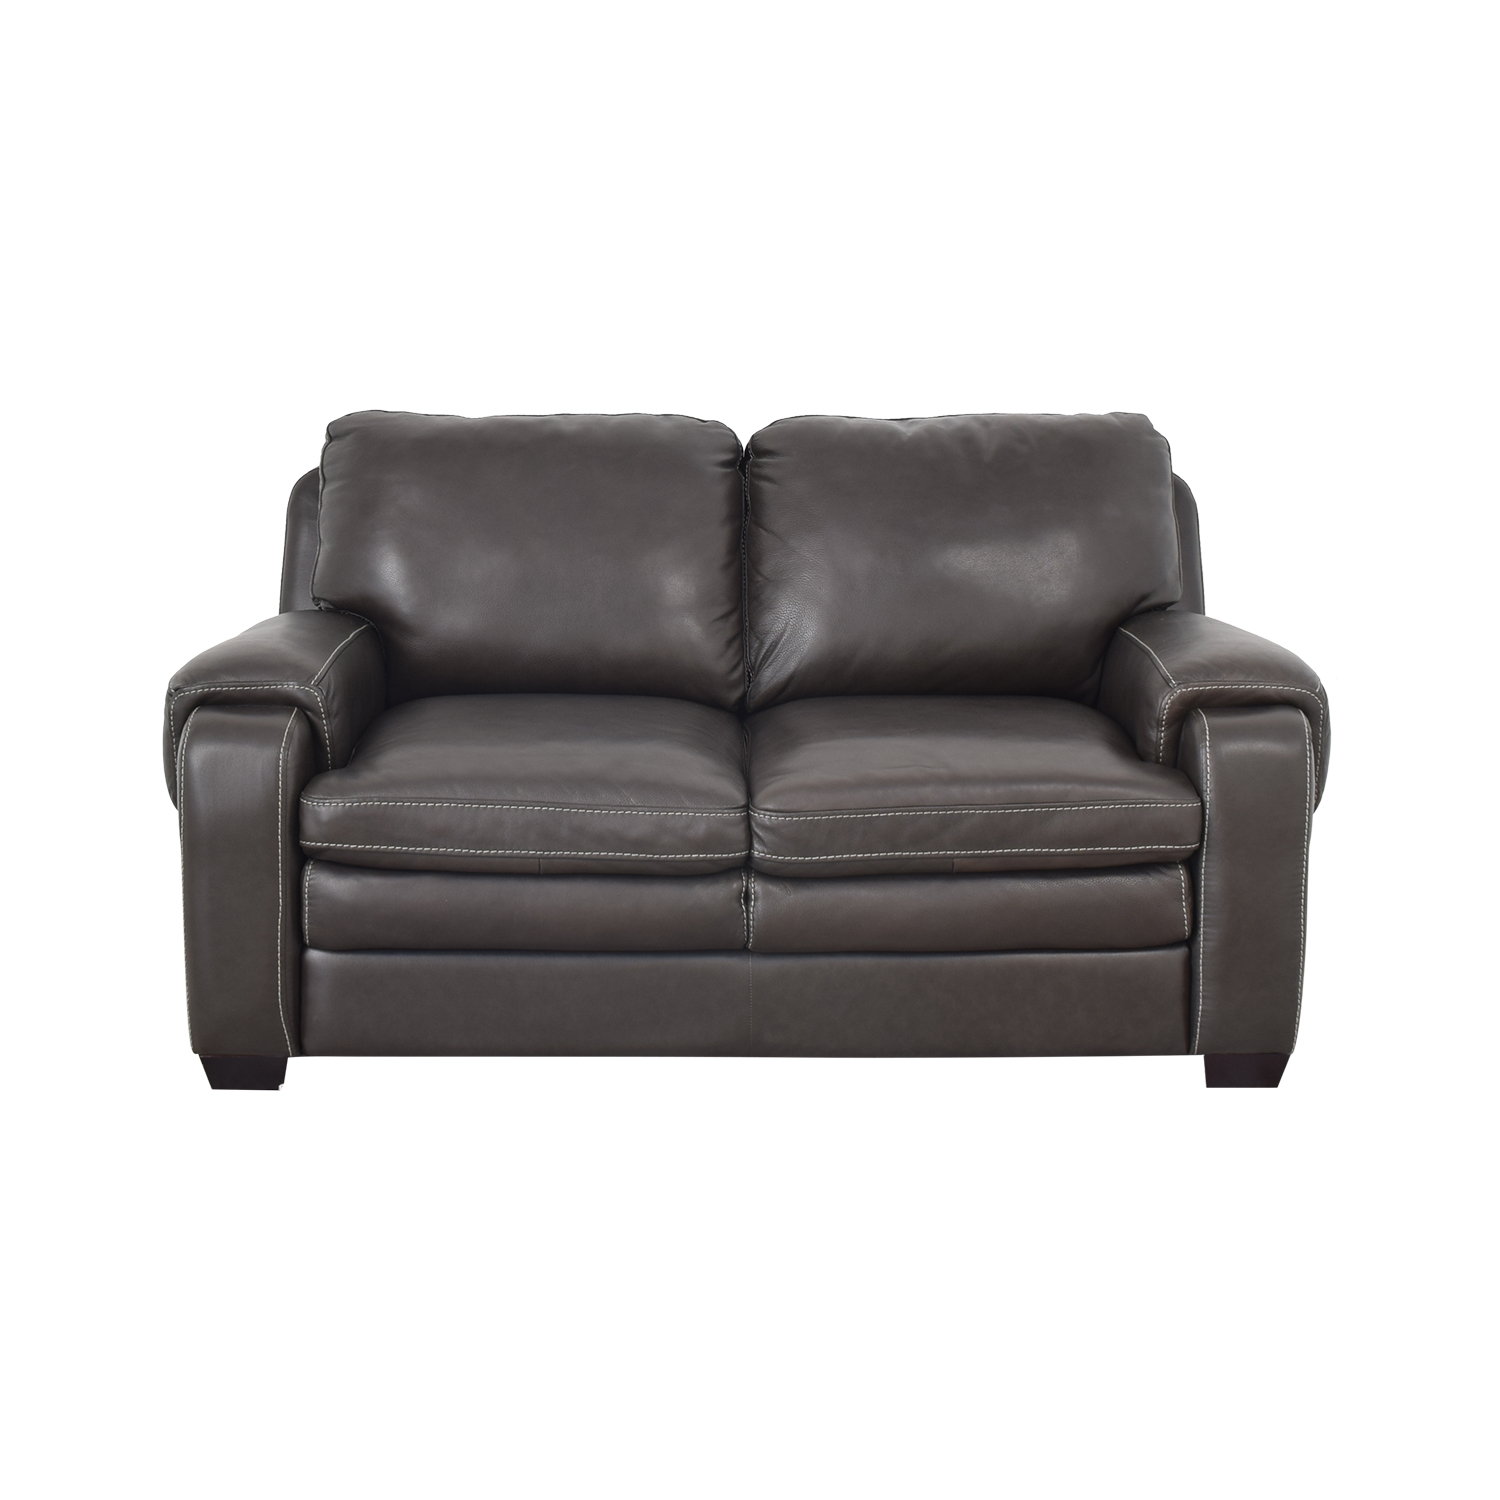 shop Raymour & Flanigan Leather Loveseat Raymour & Flanigan Loveseats